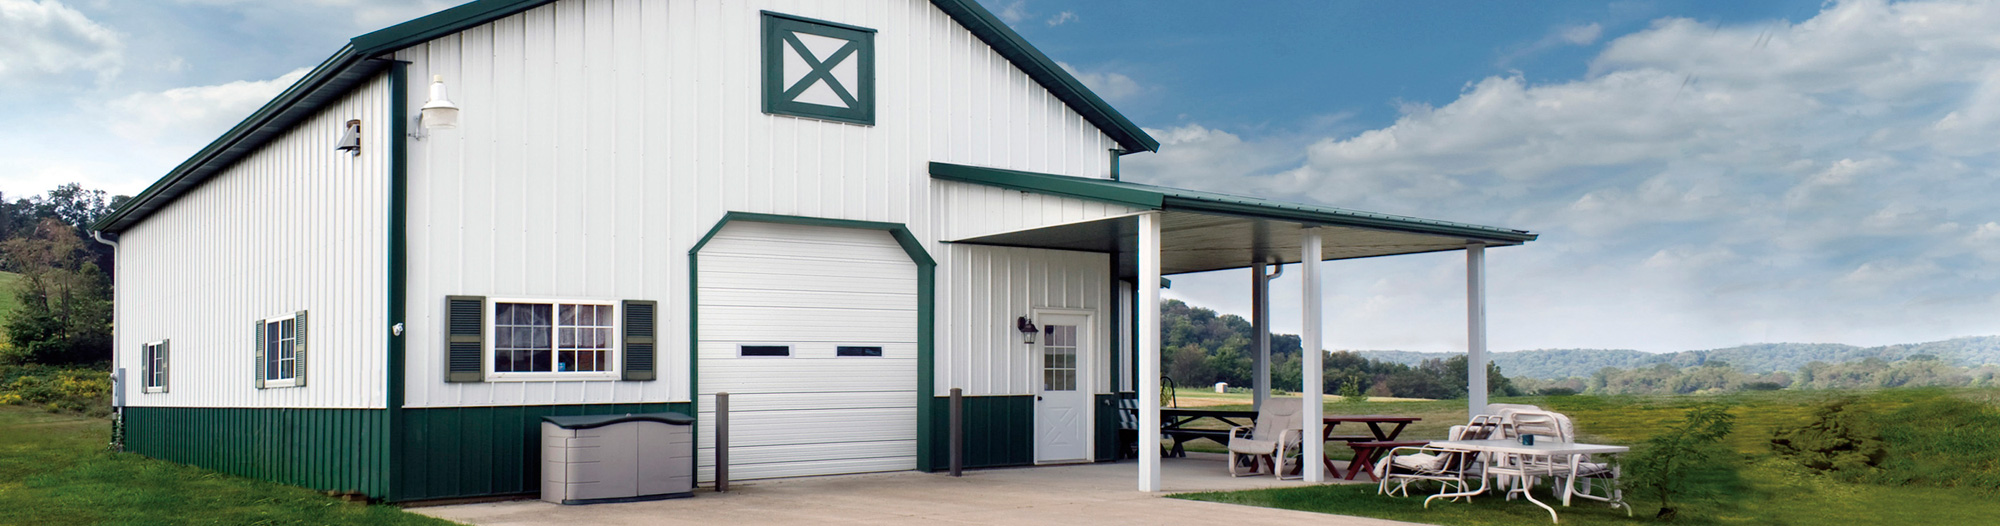 Shop and Pole Building Doors & Custom Shop and Pole Barn Building Doors | Continental Door